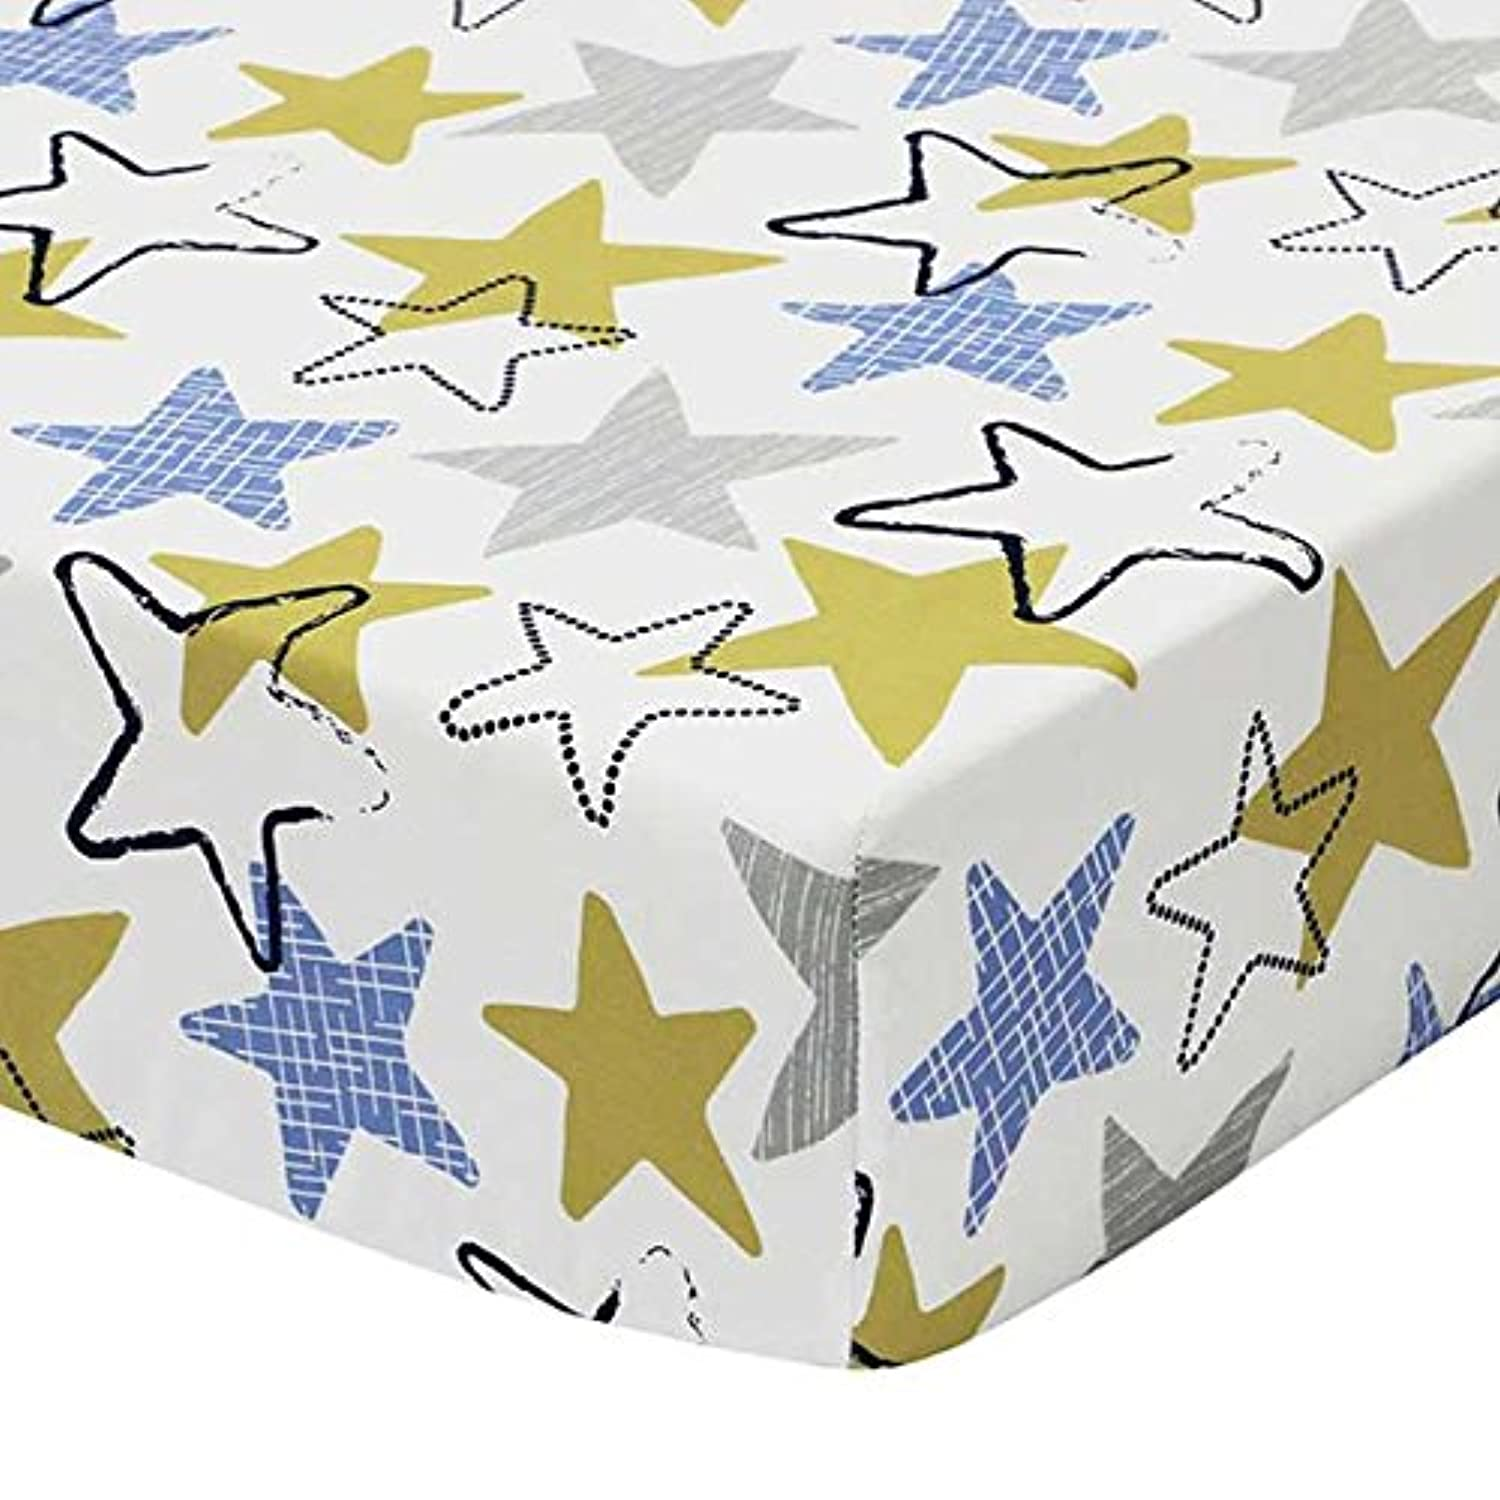 Stargazer Fitted Crib Sheet by The Peanut Shell by The Peanut Shell